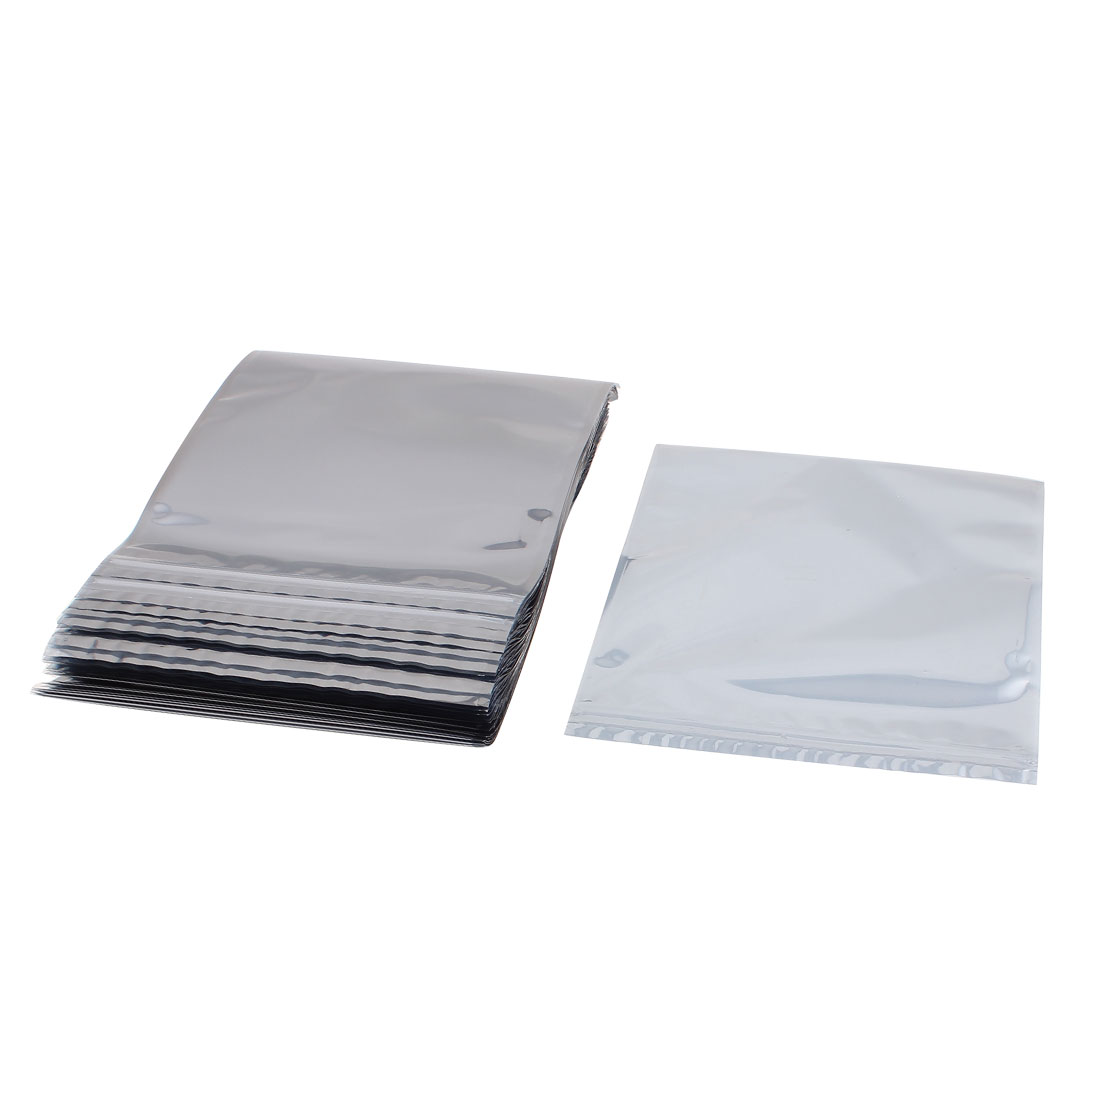 100 Pcs 210mm x 240mm Silver Tone Resealable Zip Lock Anti Static Bag